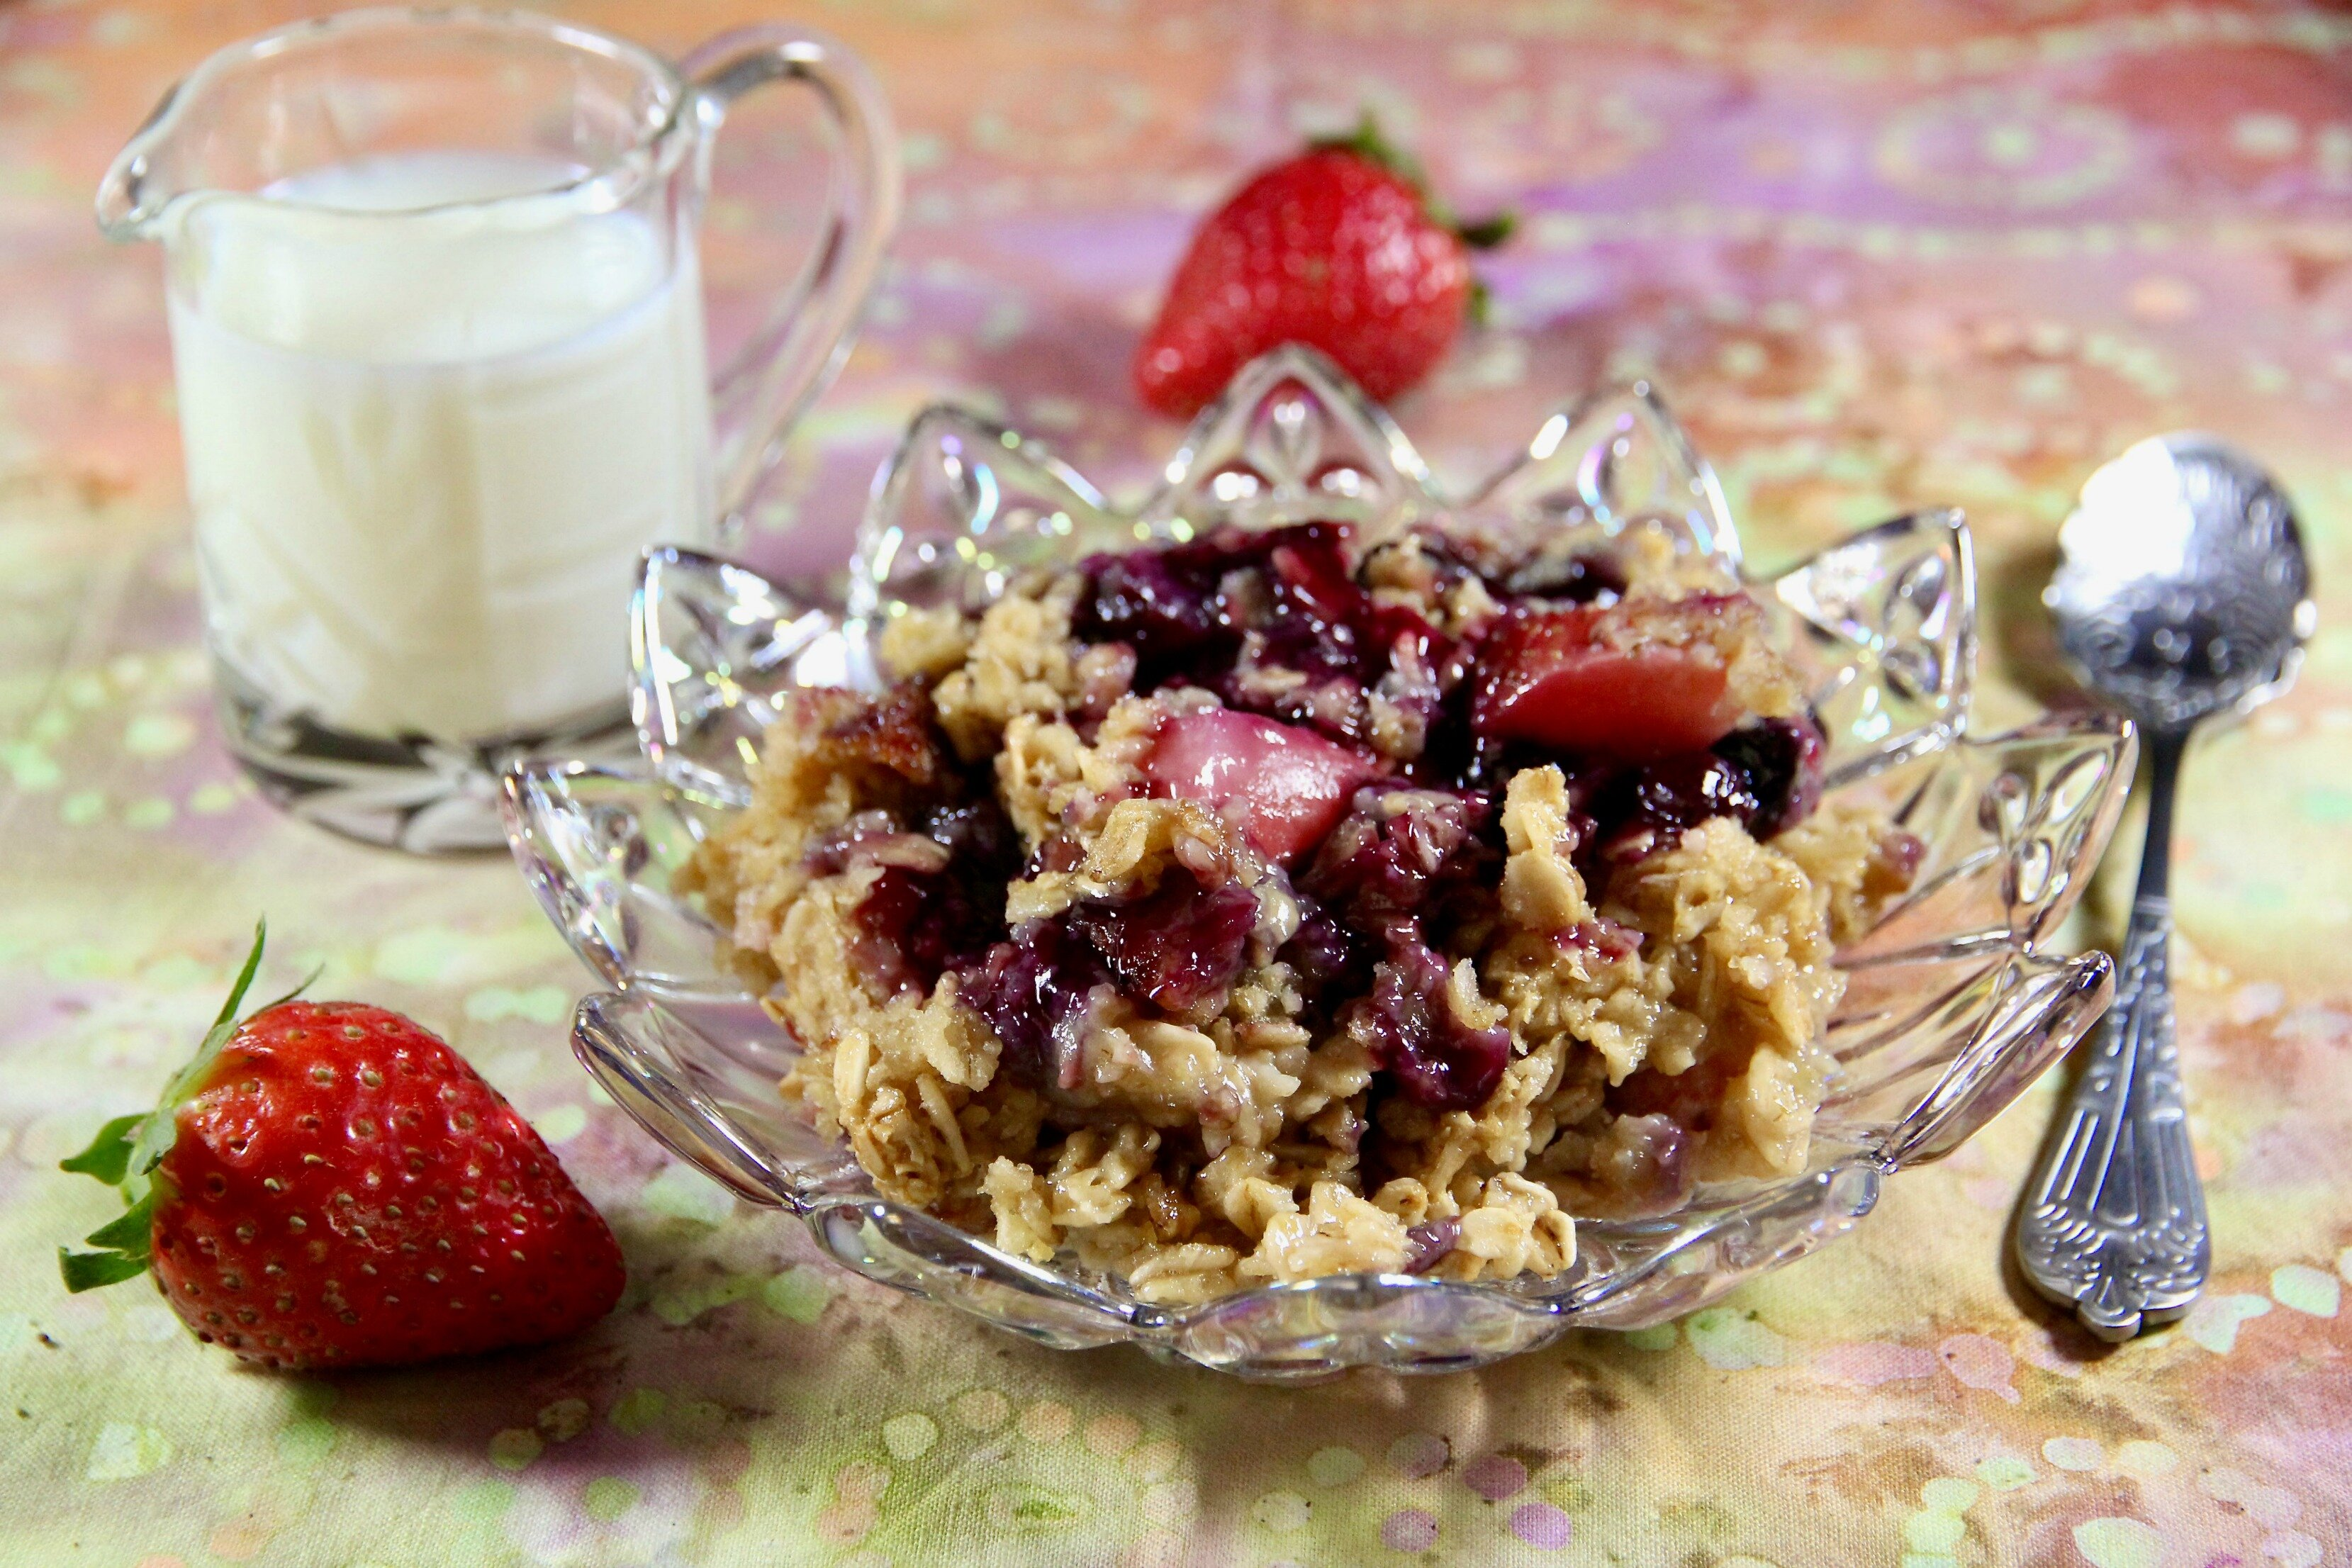 amish blackberry and strawberry baked oatmeal recipe